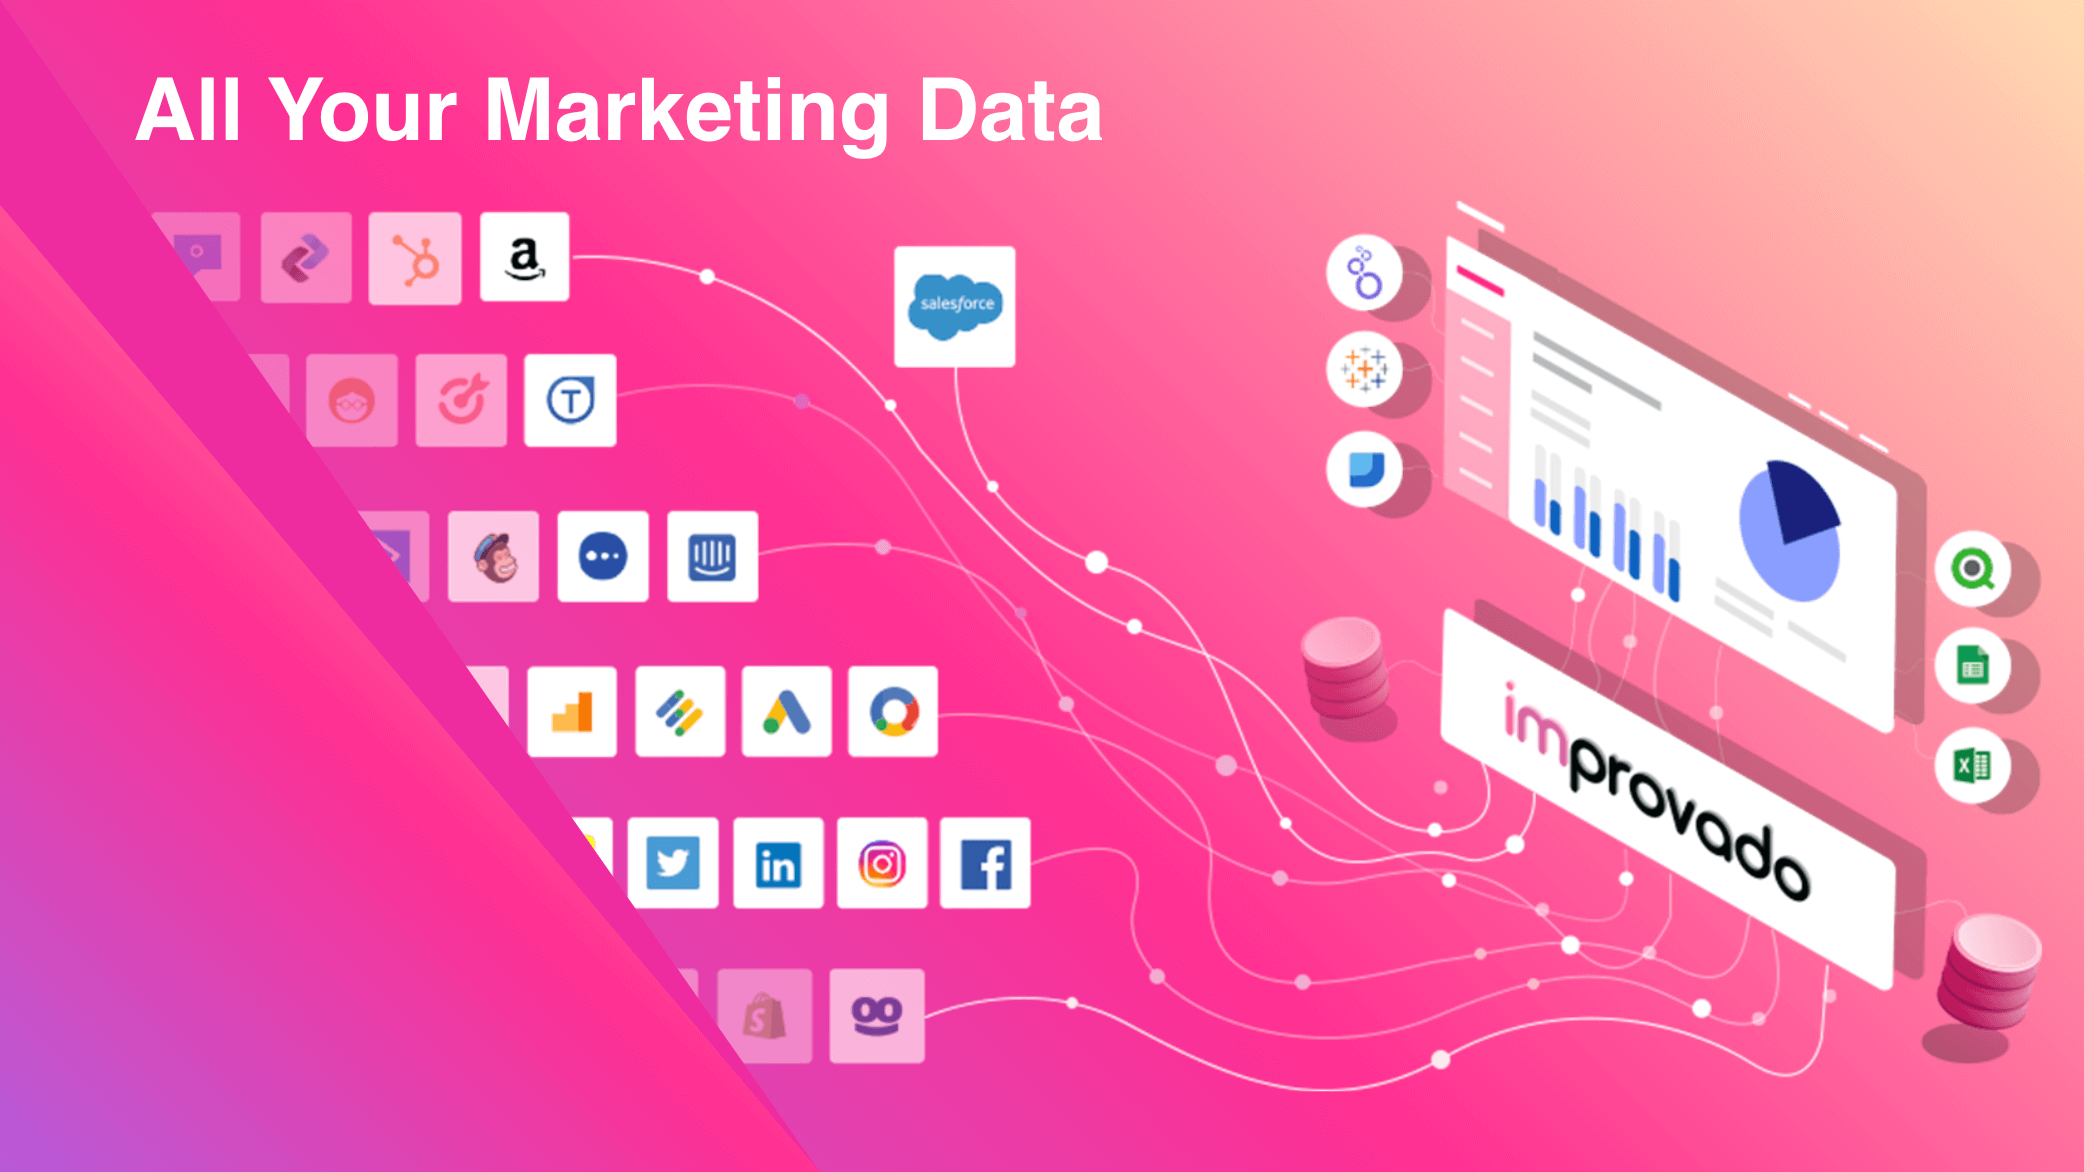 Improvado. All your marketing data in one place